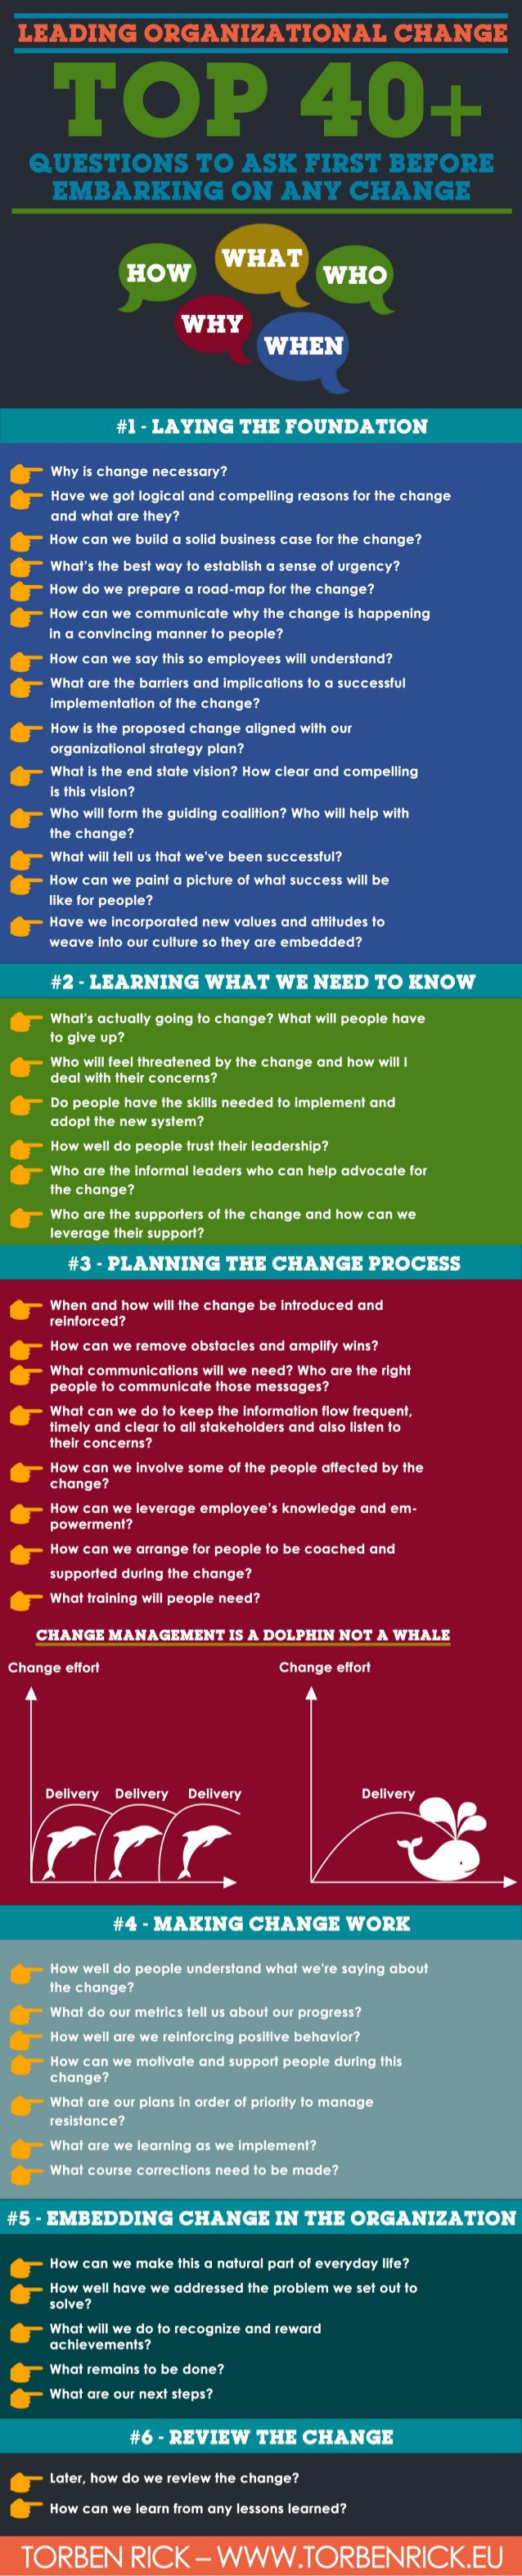 leading organizational change Leading organizational change learn powerful methods to revitalize your organization, to gain cooperation, to improve strategic thinking and creative problem solving, to boost performance, and to extract maximum benefit from new opportunities.